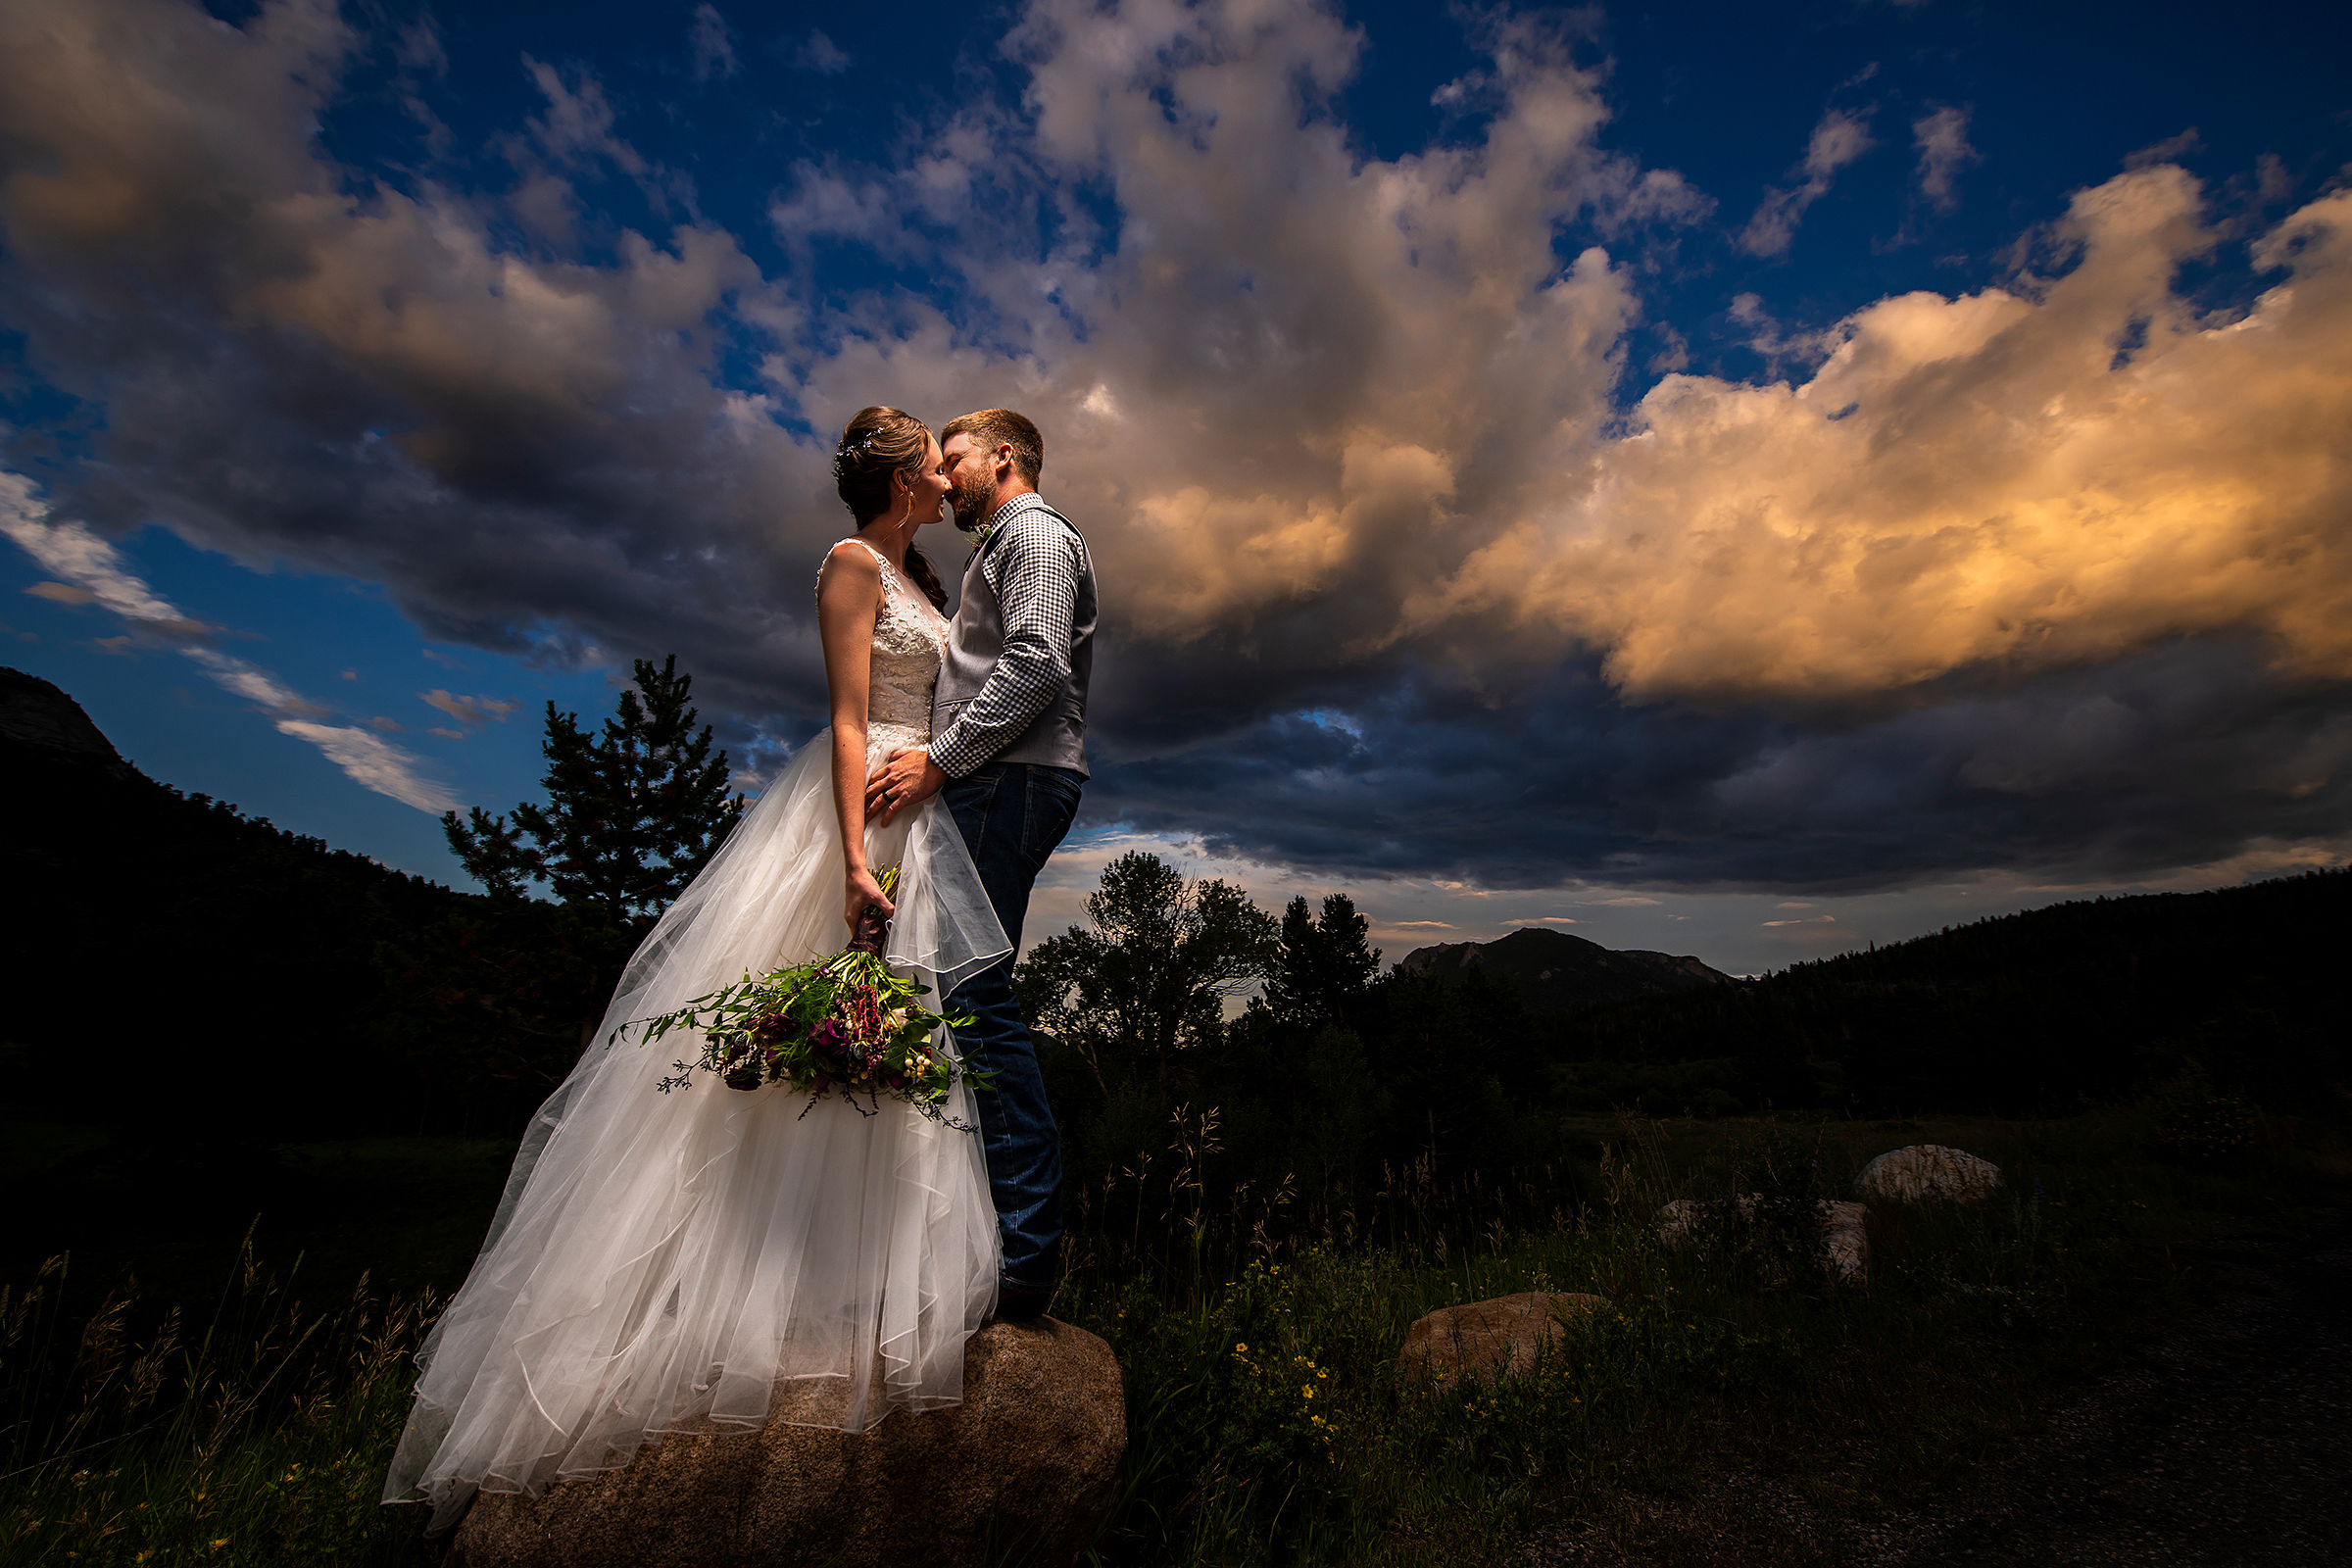 Creative composition of bride and groom against dramatic sky - photo by J La Plante Photo